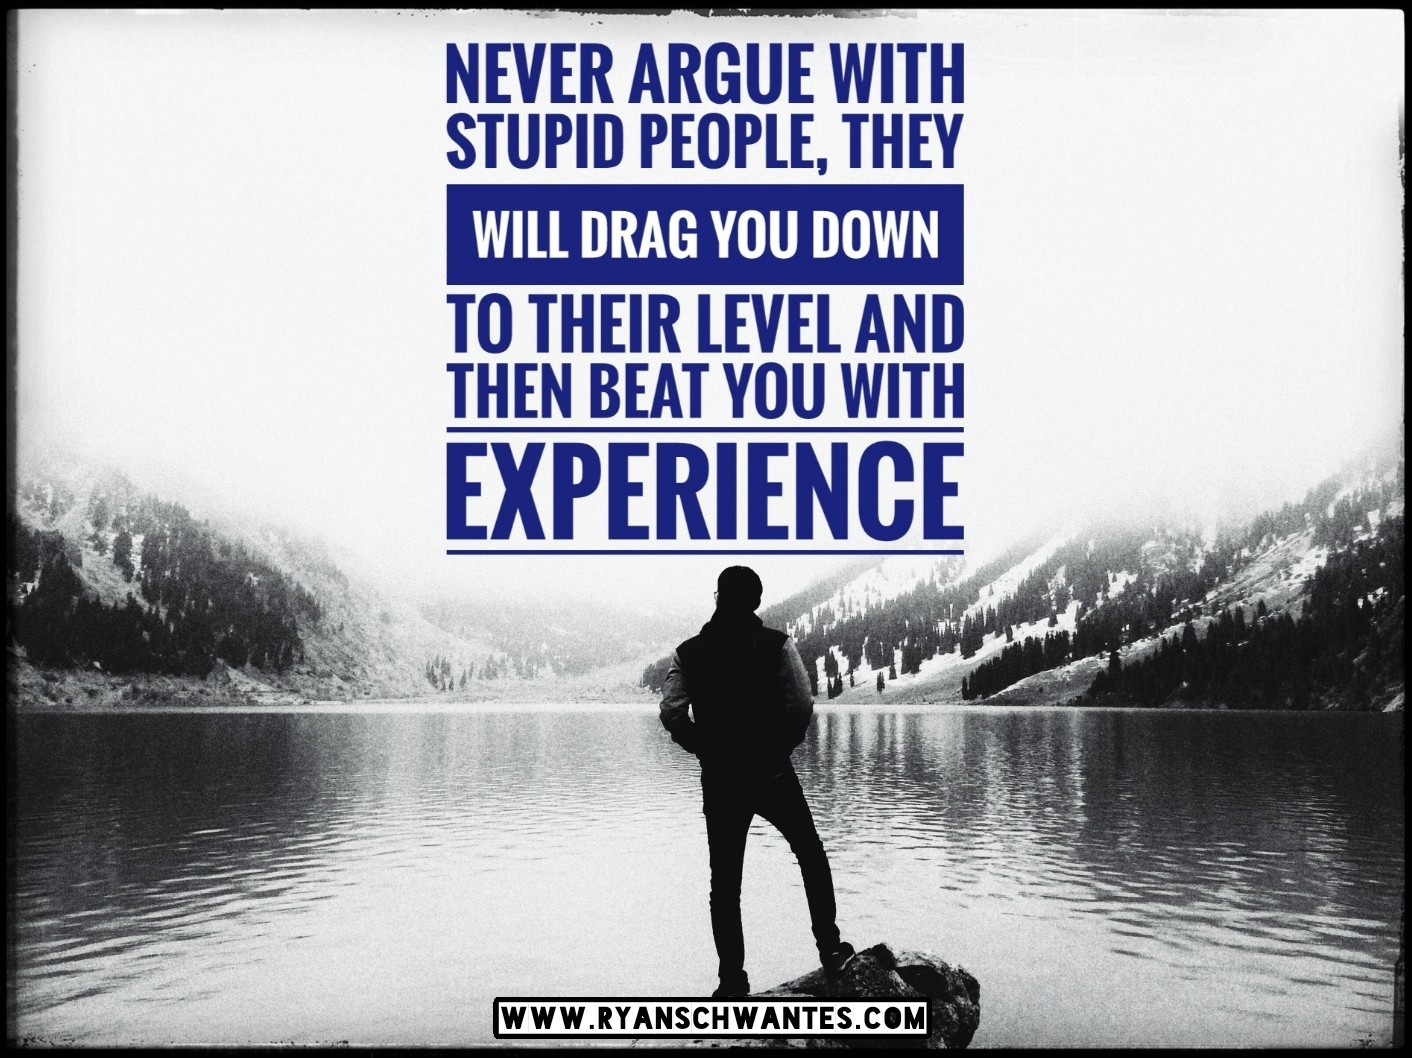 Never-argue-quote-ryan-schwantes-site